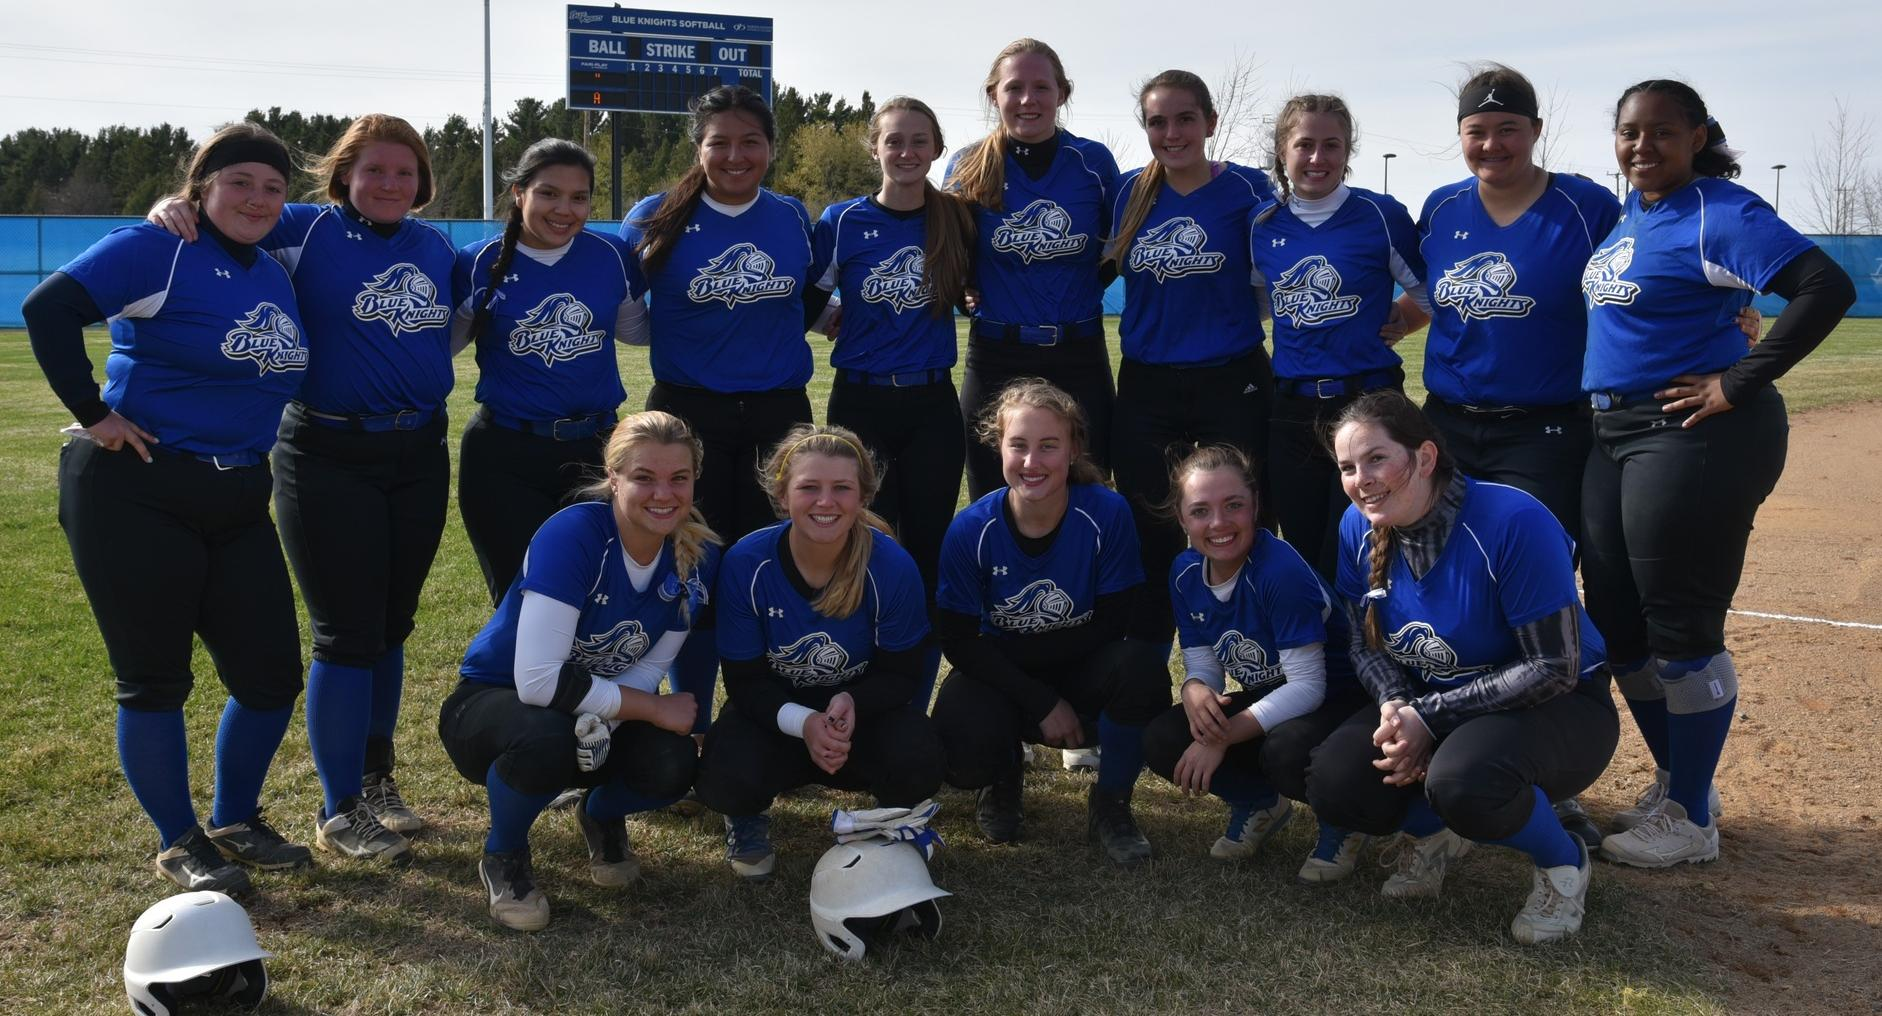 Softball Heads to Glendive, MT for the NJCAA Region XIII Division II Softball Championships